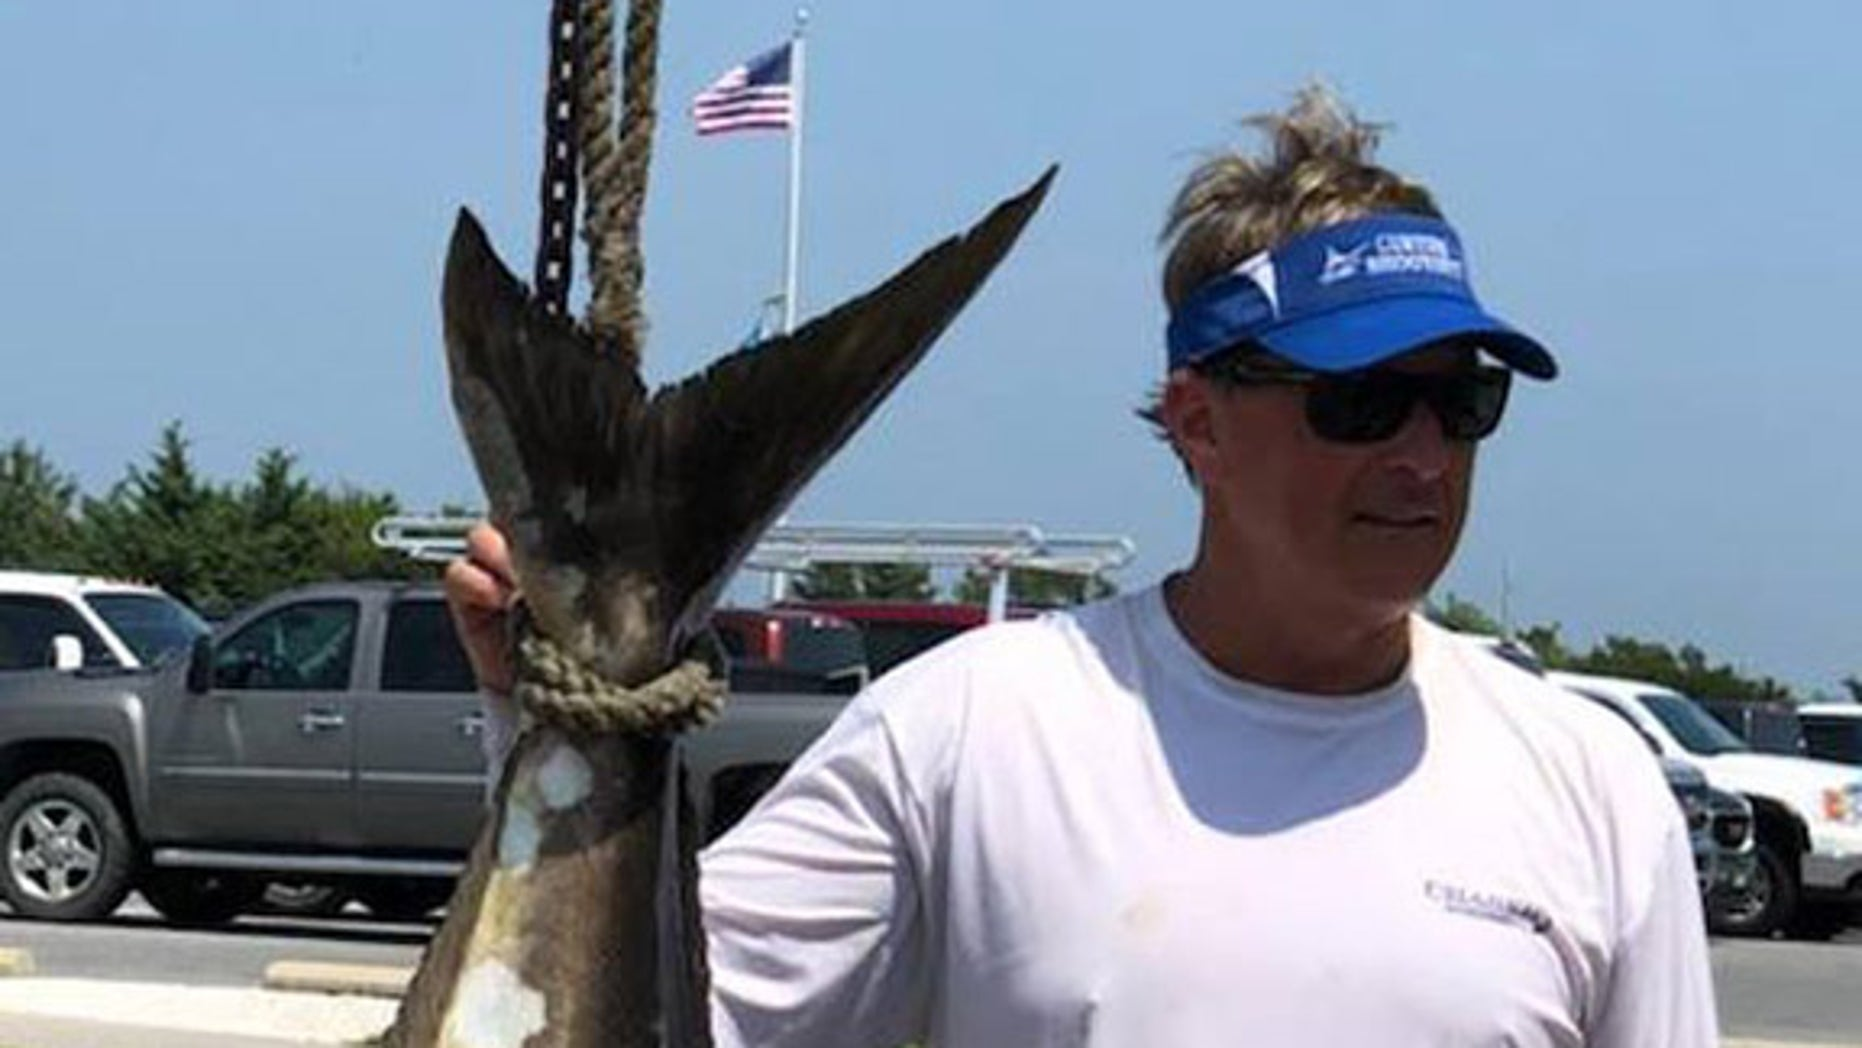 John Burbage, of Ocean View, wrestled with his massive catch for over an hour before reeling it in.